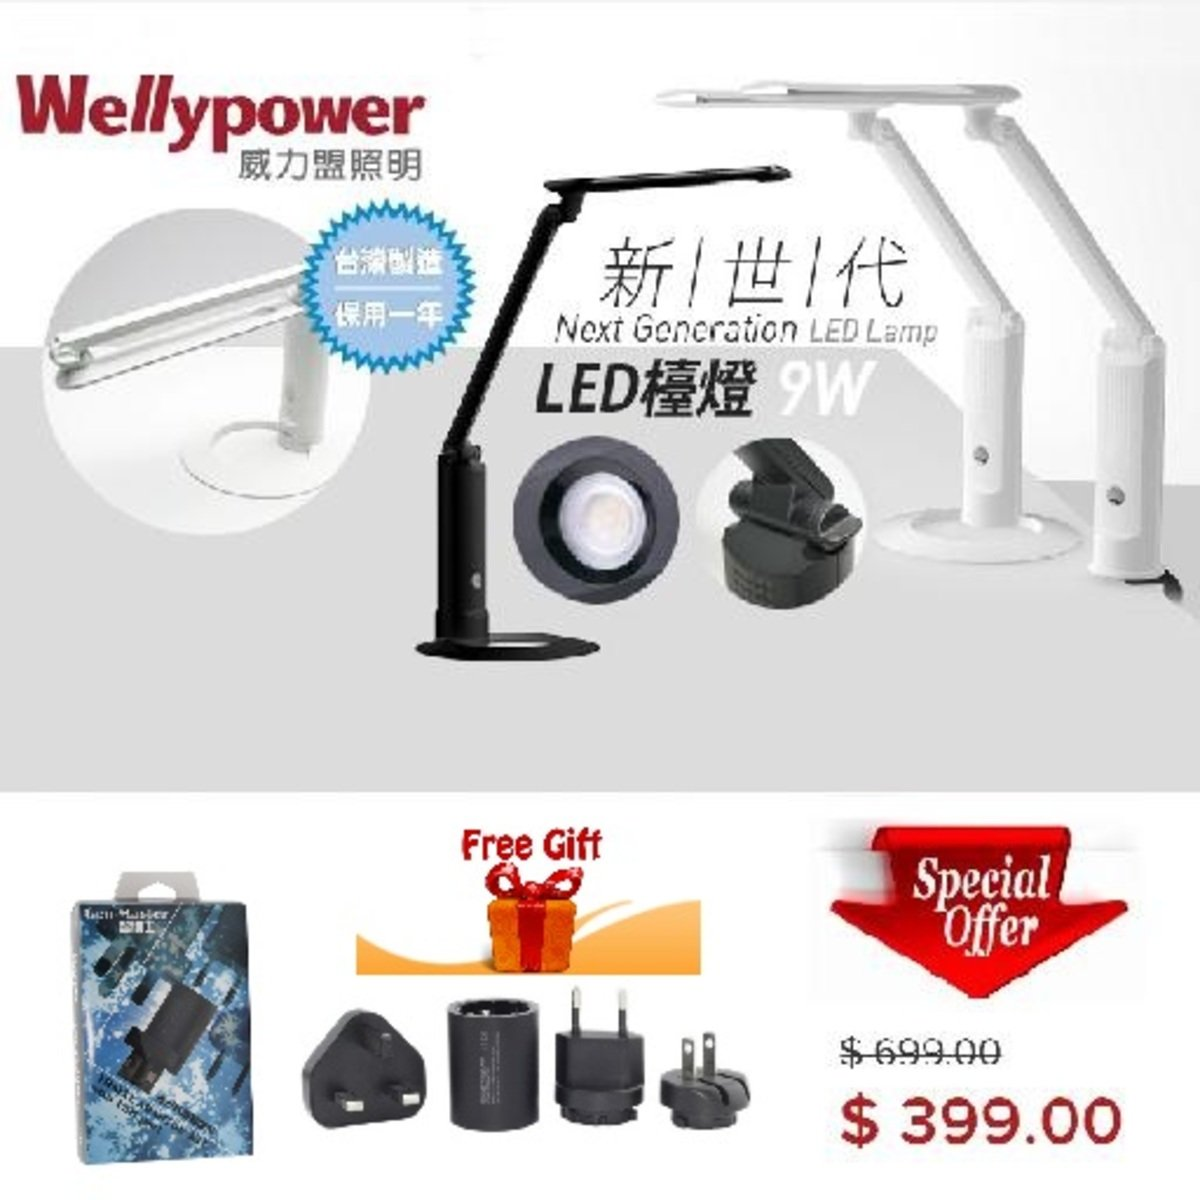 Next Generation 9W LED Black Desk Lamp Daylight (Free Gift of USB Travel Charger Kit)